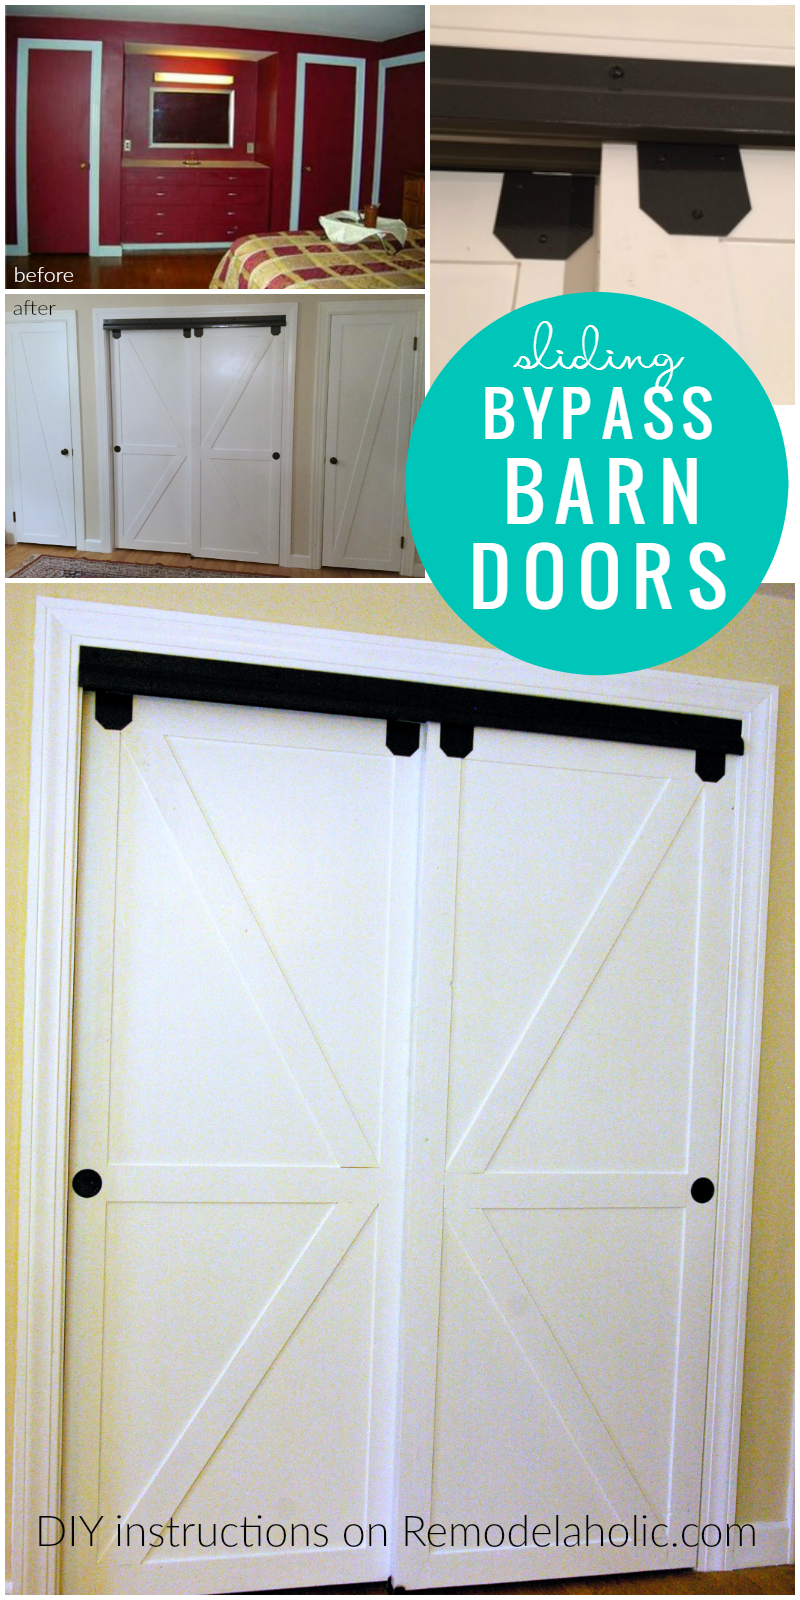 Diy Double Sliding Byp Barn Doors Remodelaholic